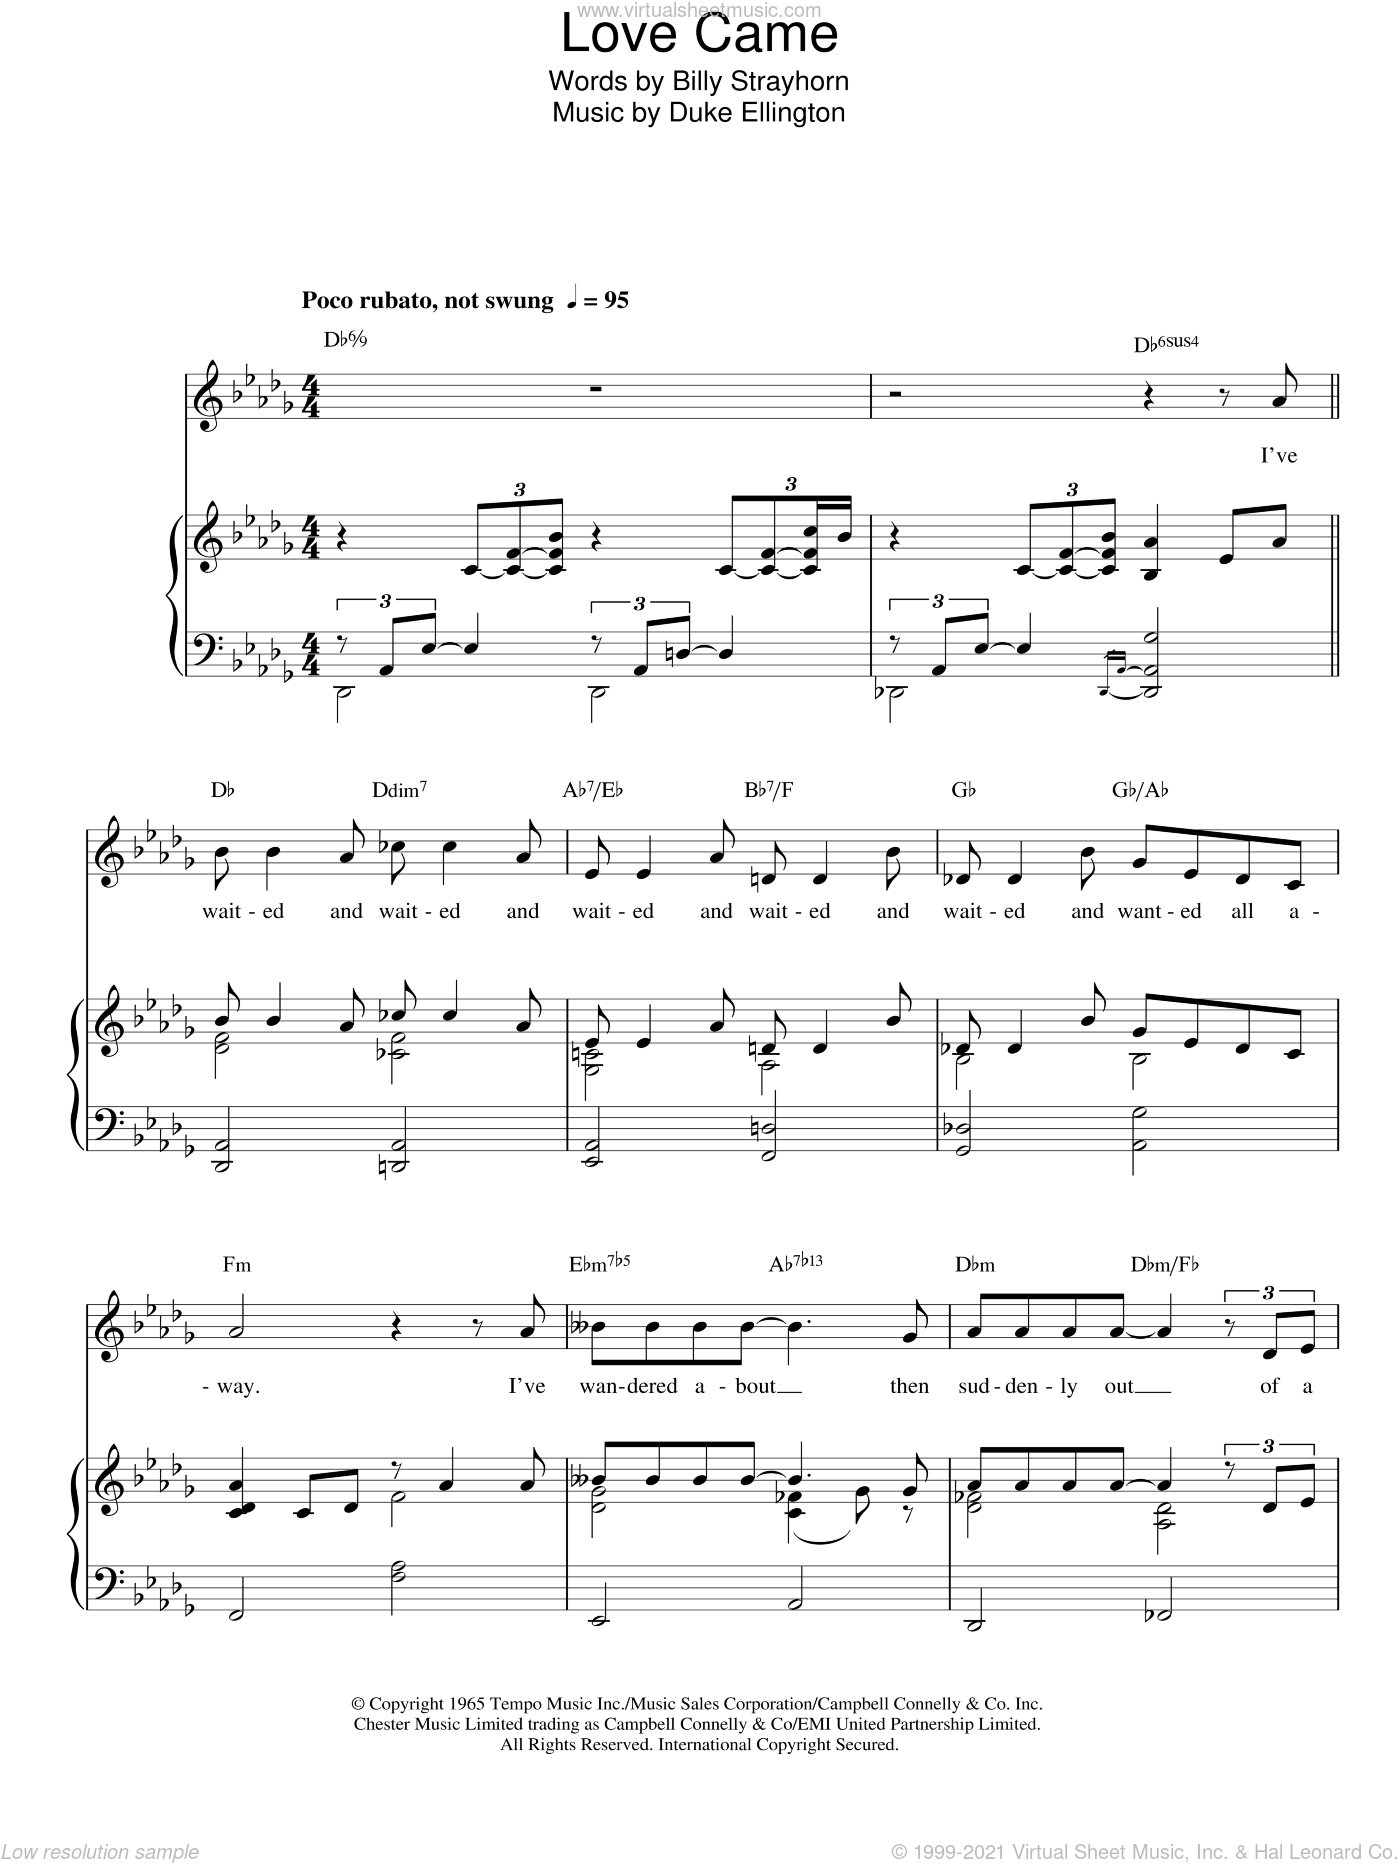 Love Came sheet music for voice, piano or guitar by Duke Ellington